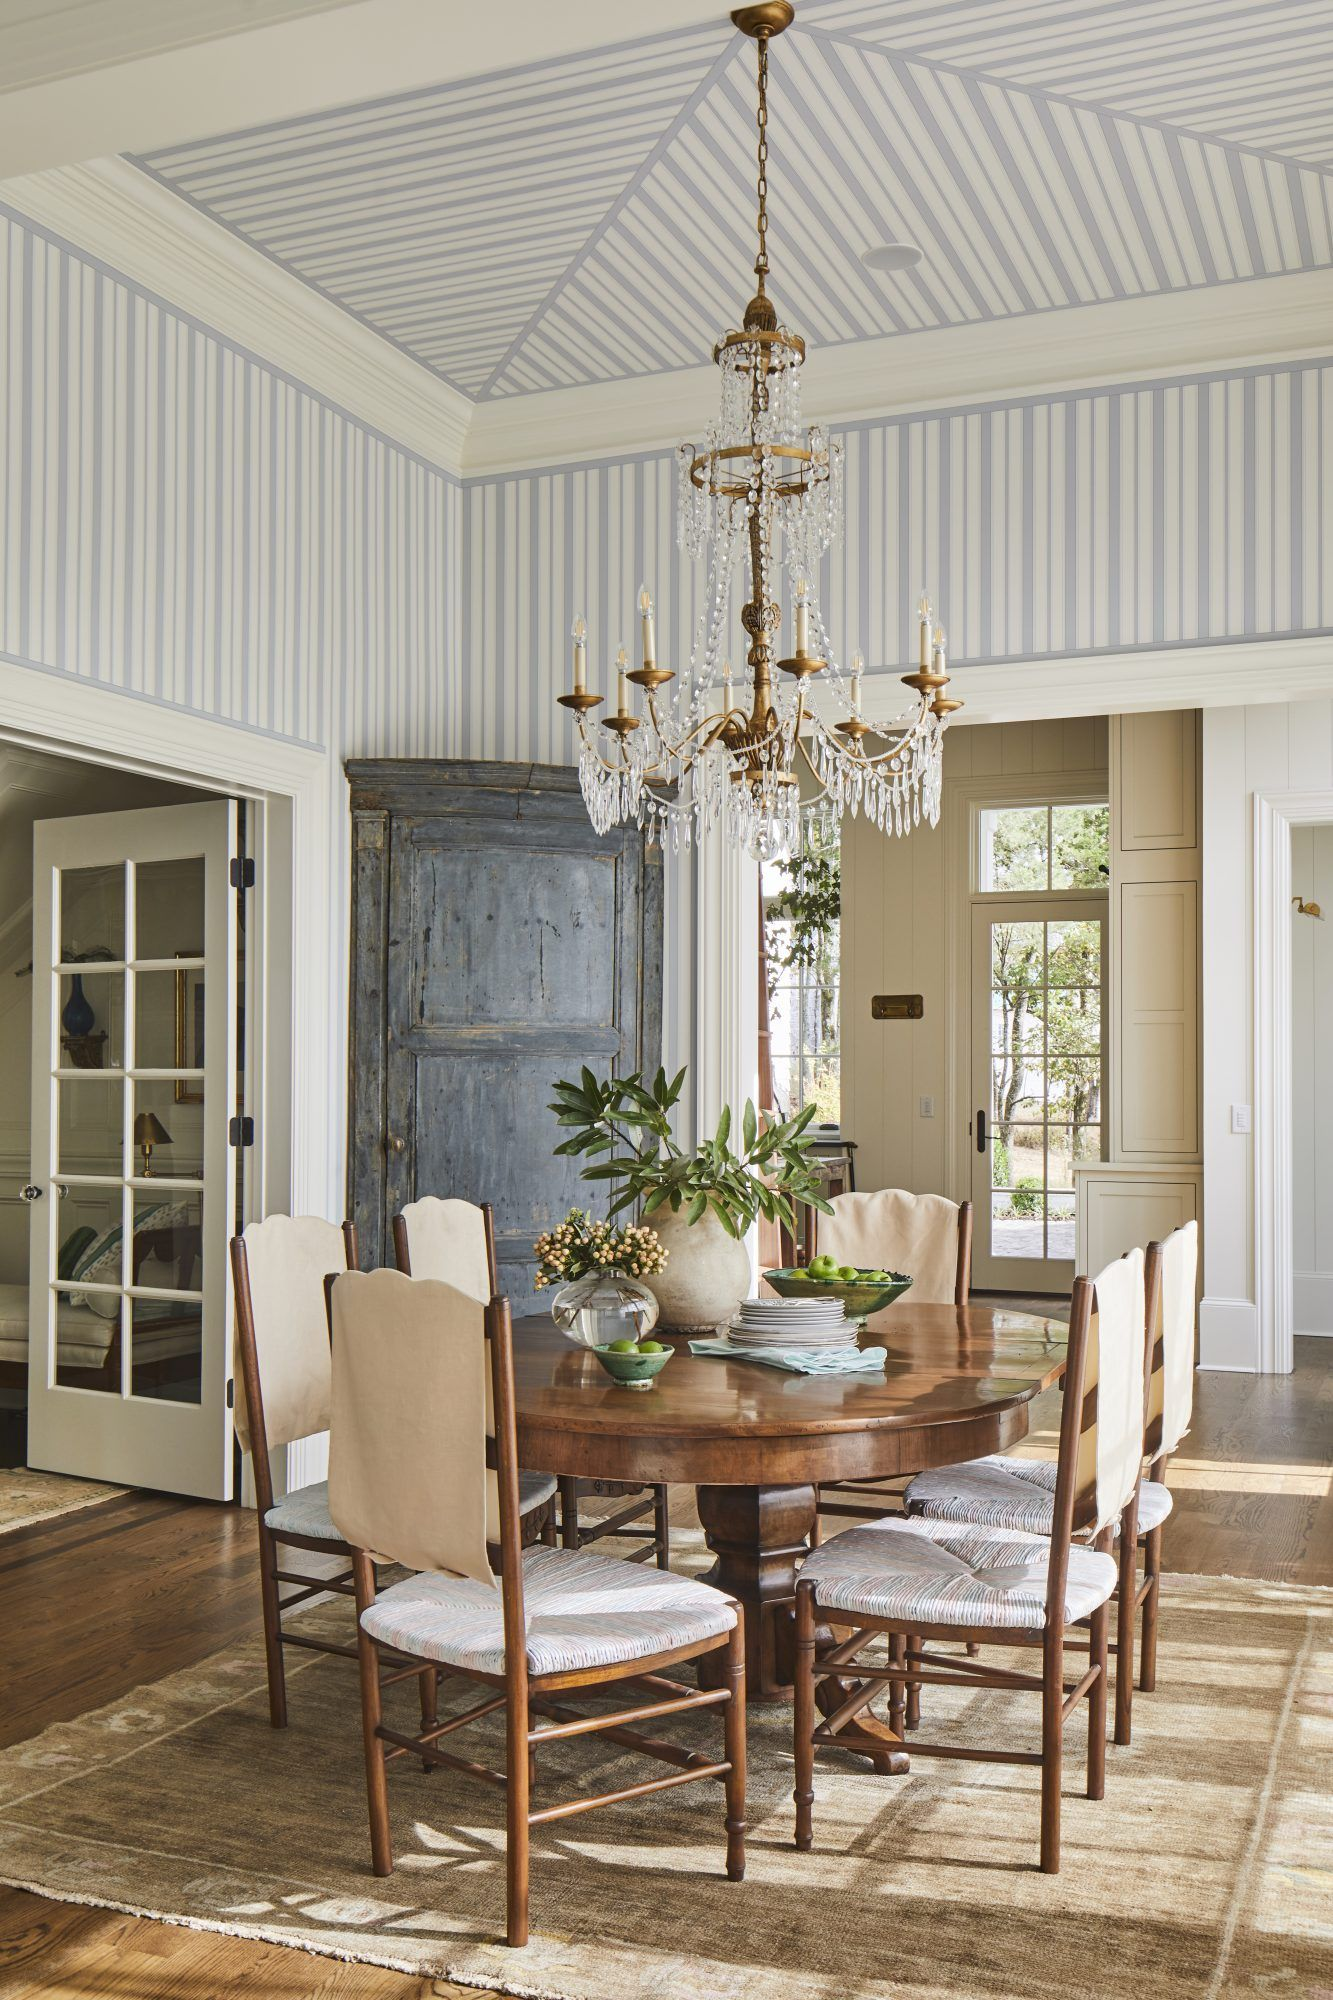 A Tennessee Home With Old Southern Charm In 2020 Classic Dining Room Old Southern Homes Historic Home